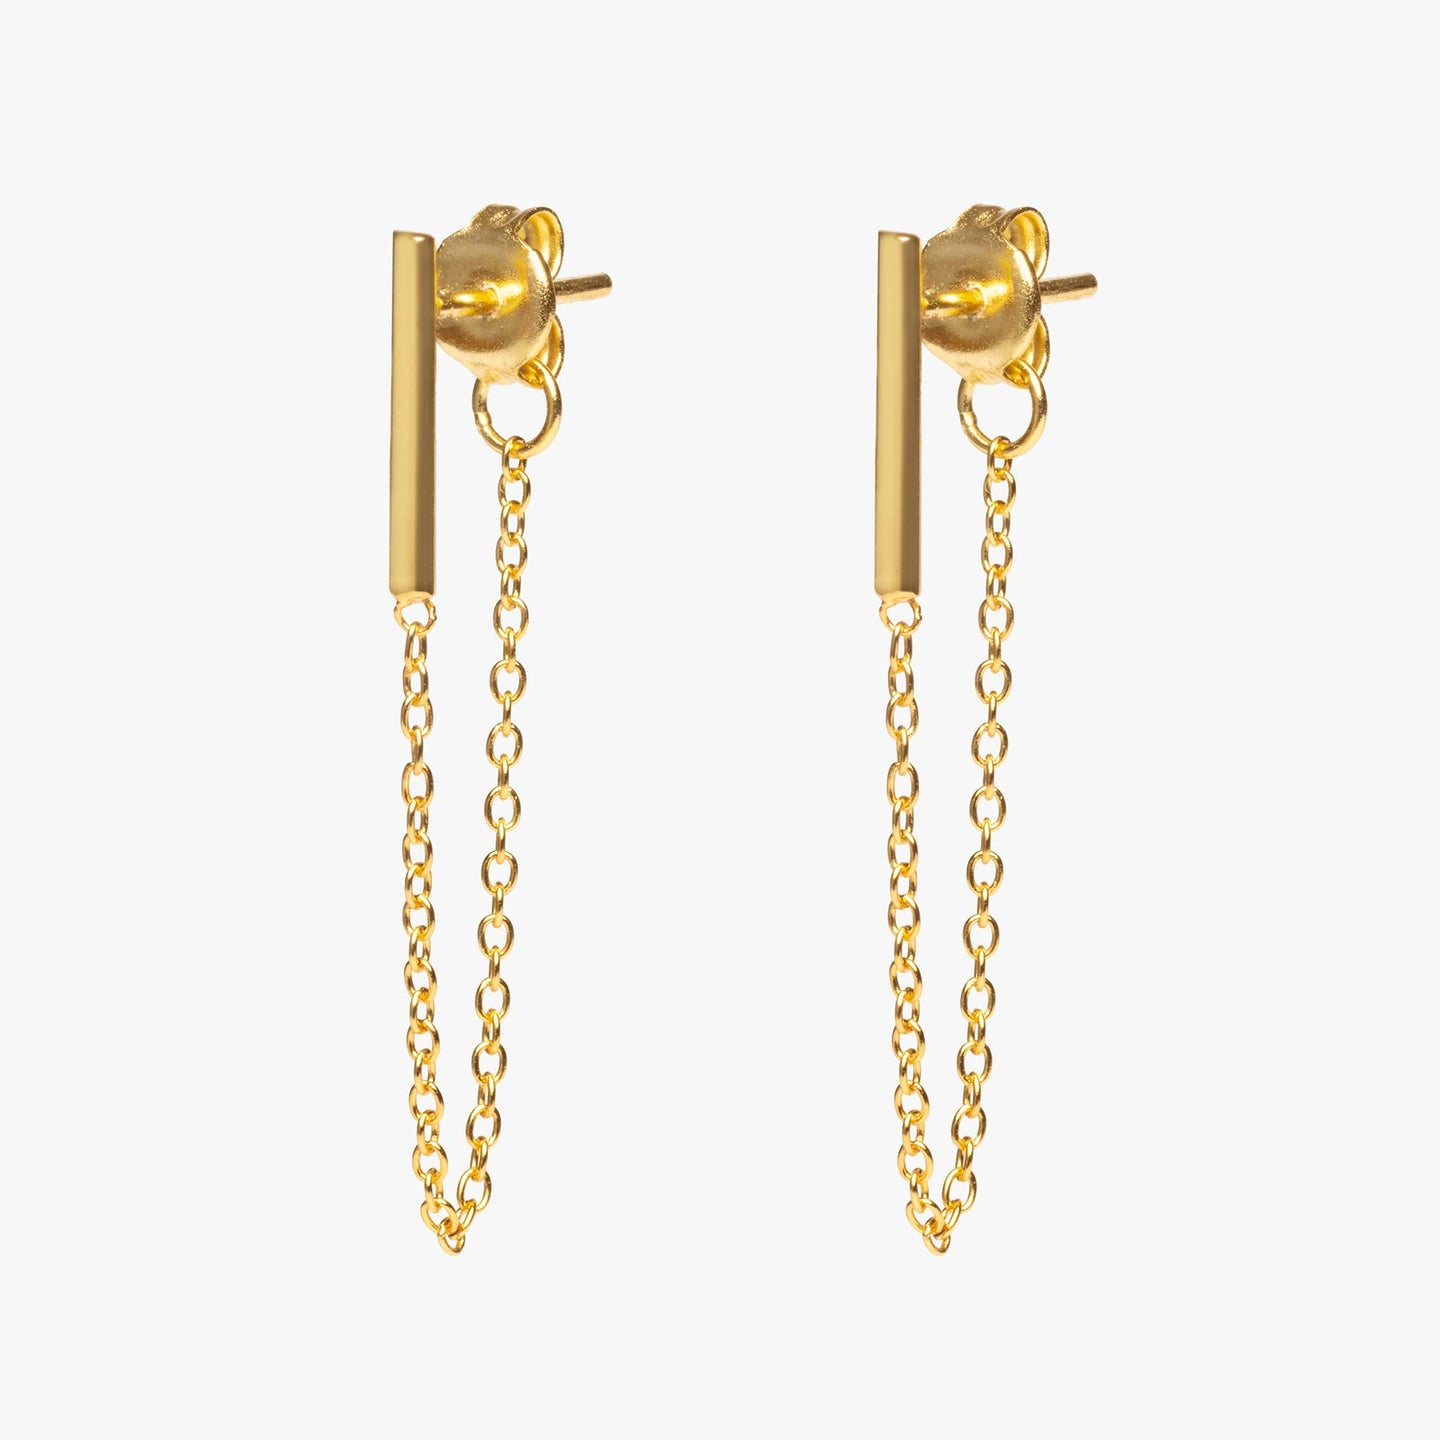 Gold bar earring with chain linked from front to back. [pair] color:gold